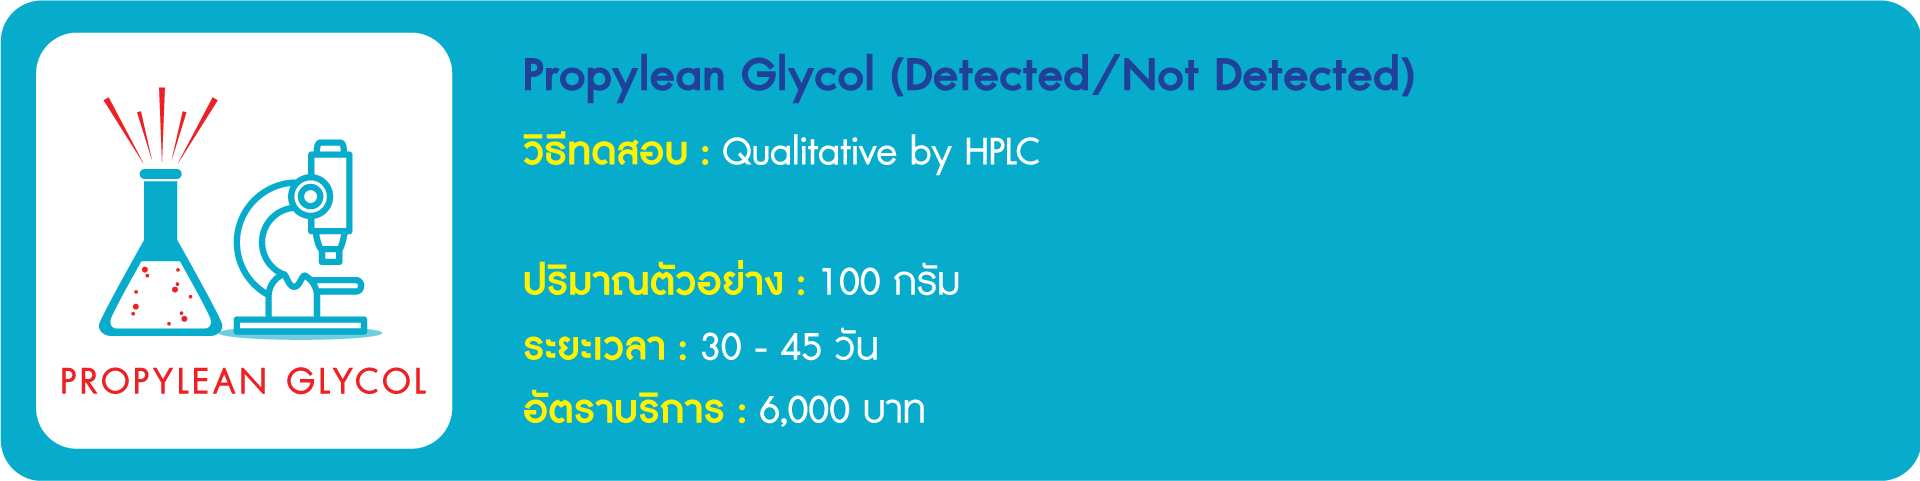 Propylean Glycol (Detected/Not Detected)